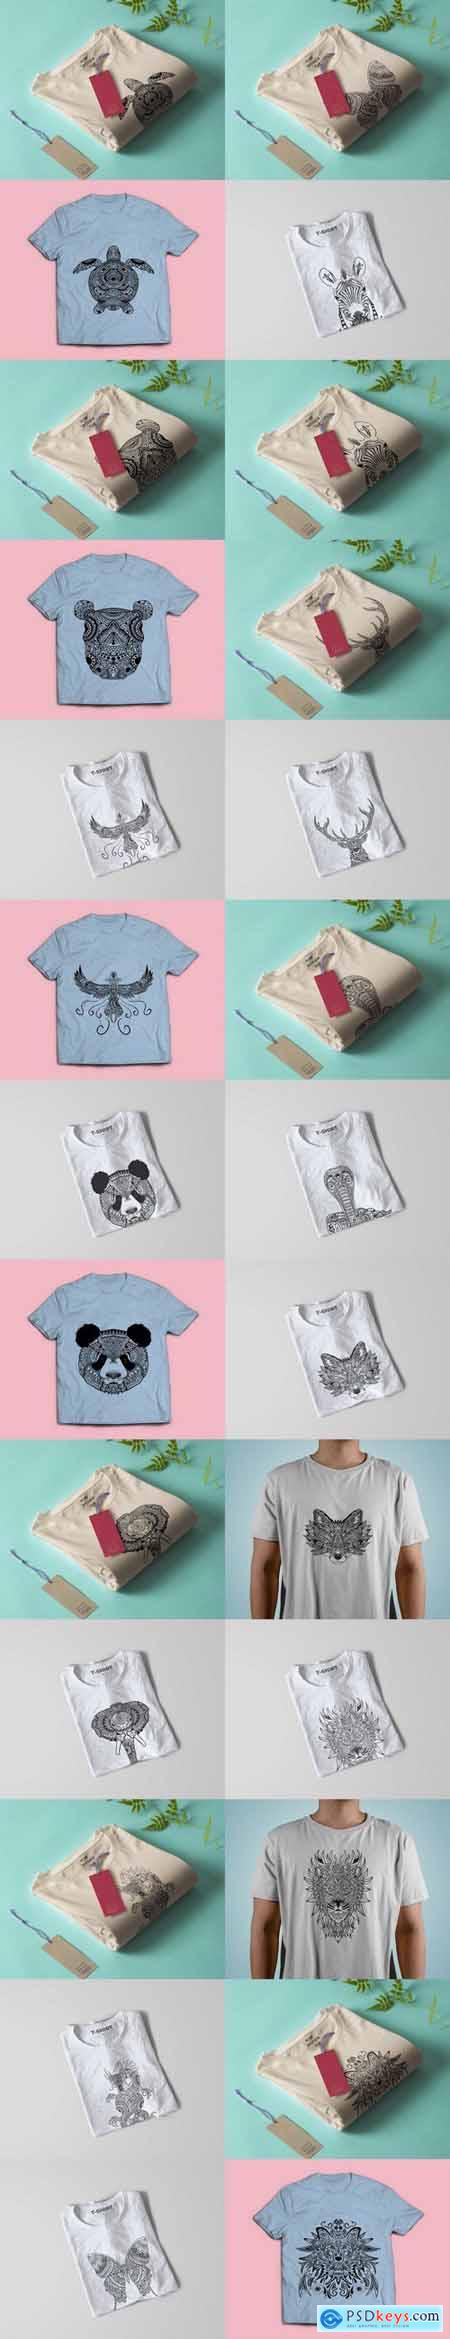 Animals T-shirt Design Vector Illustration Bundle